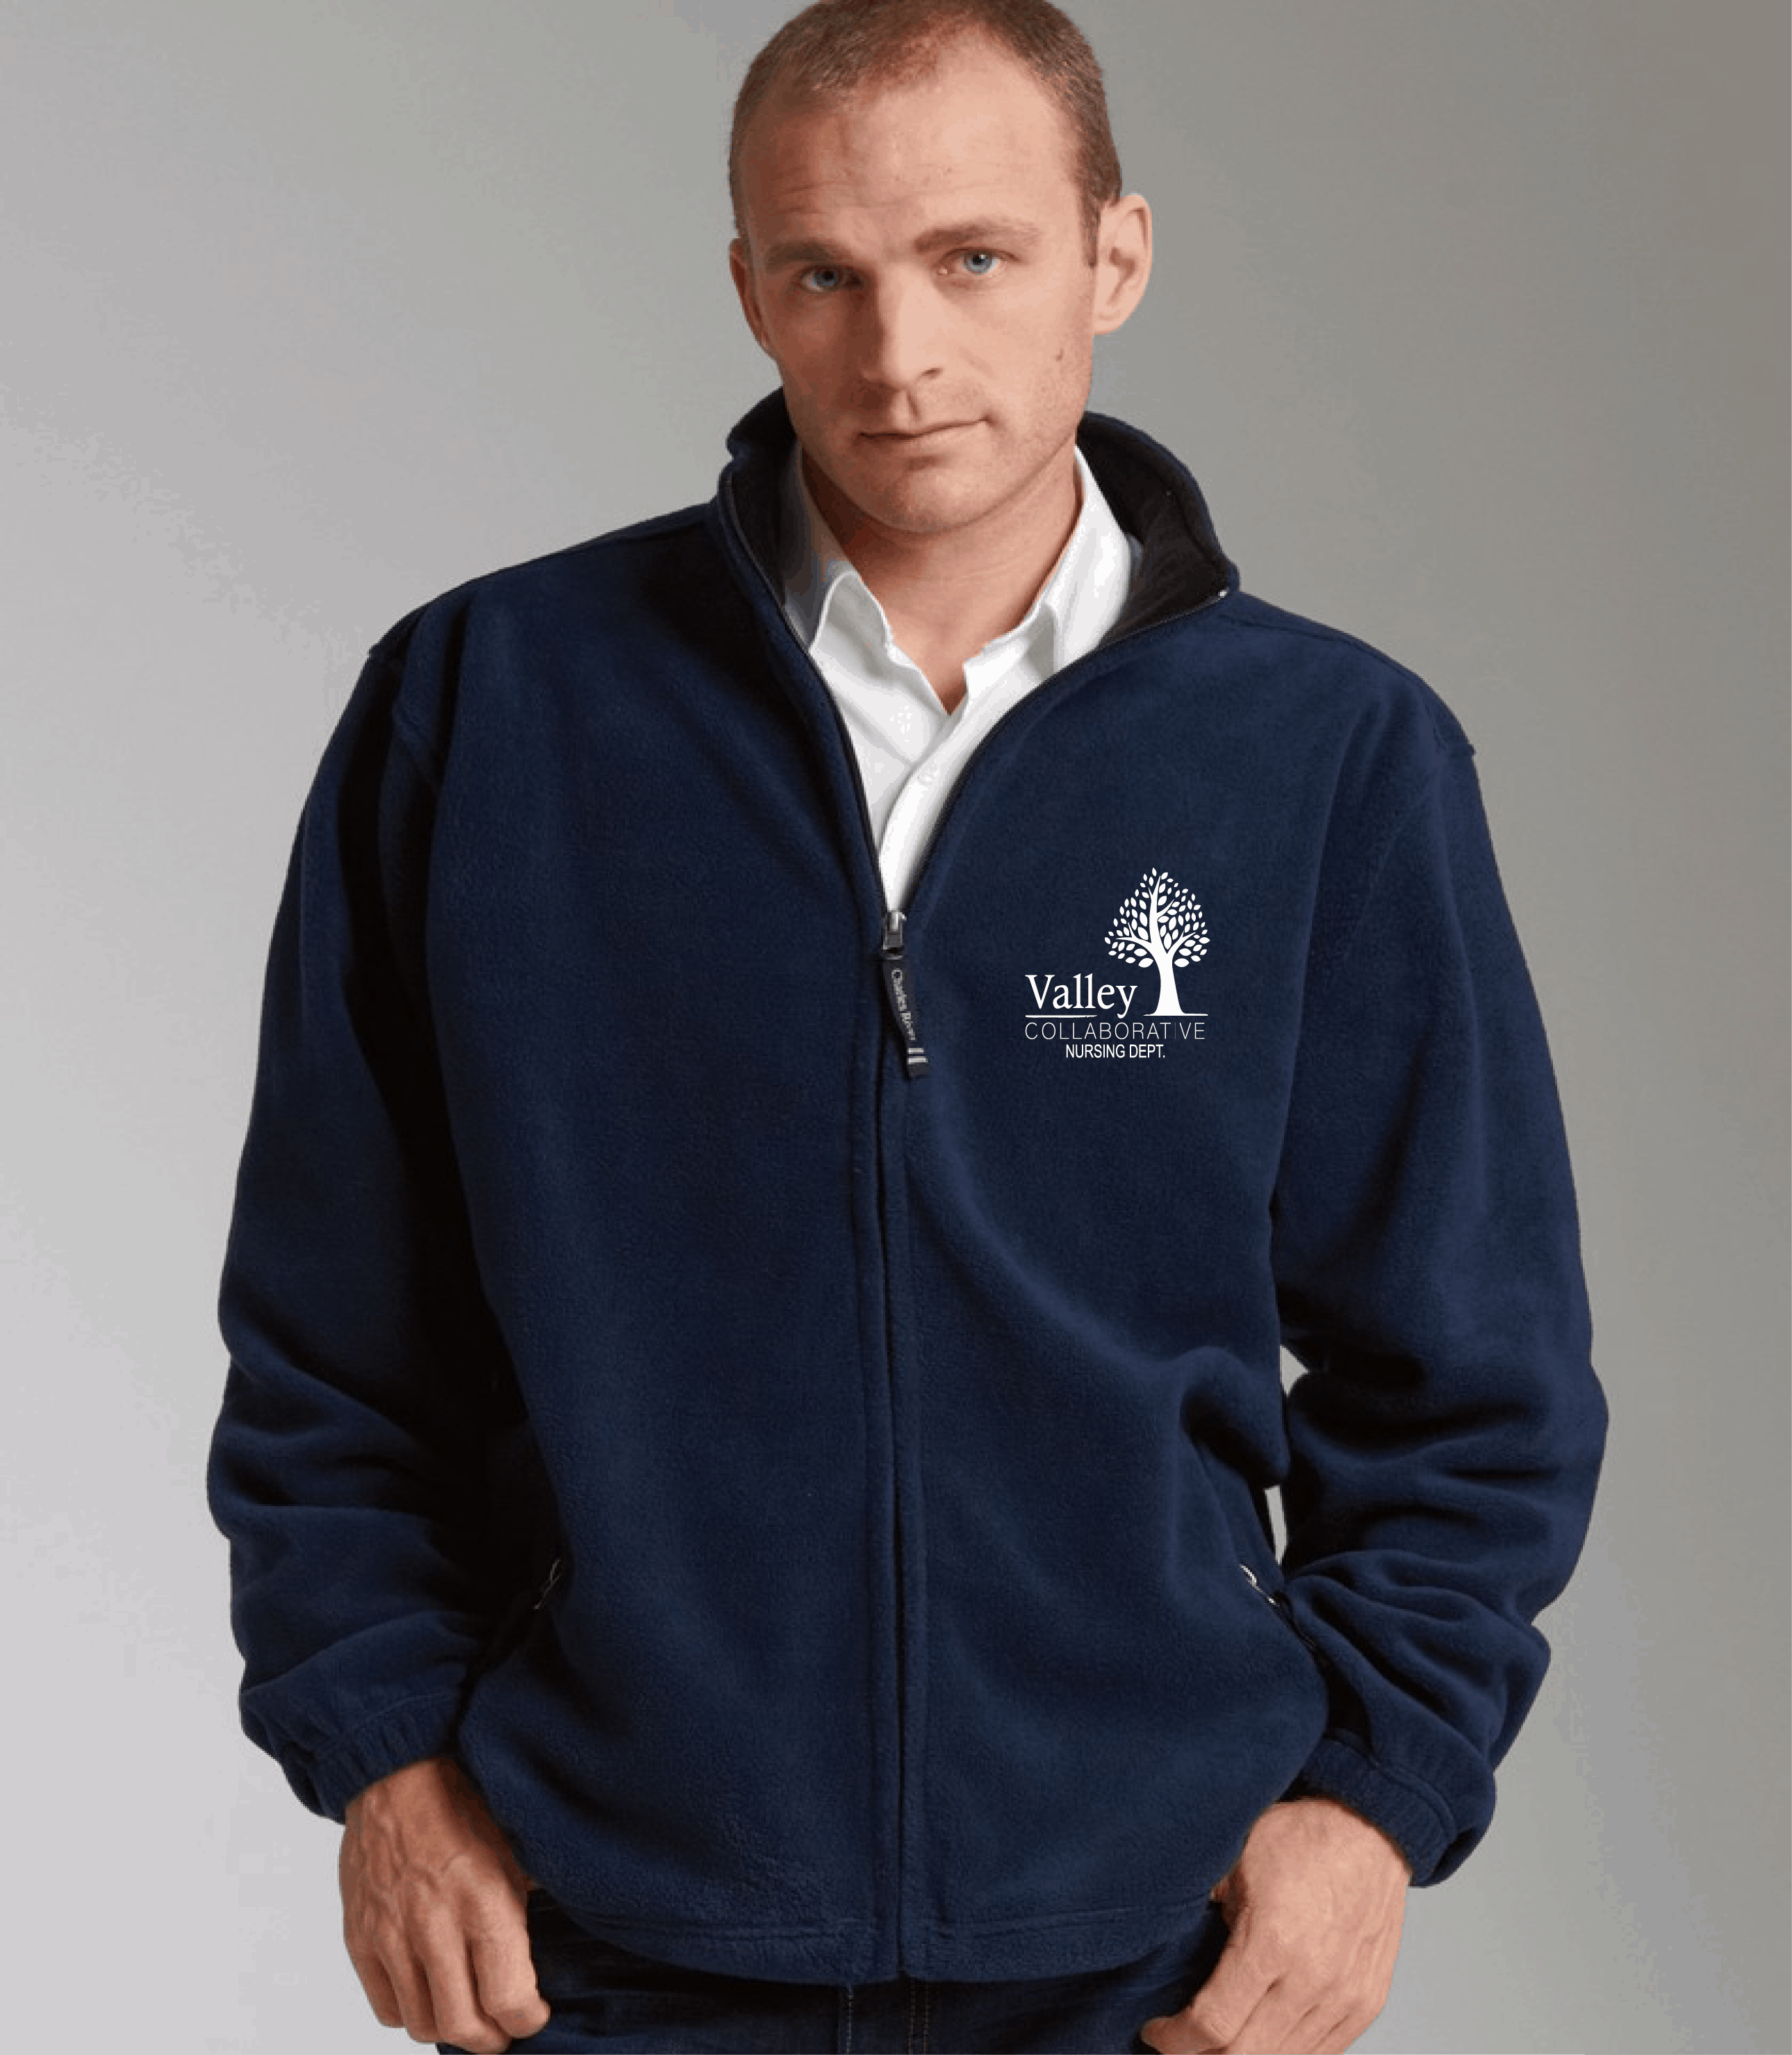 valley collaborated embroidered men s or women s fleece jacket